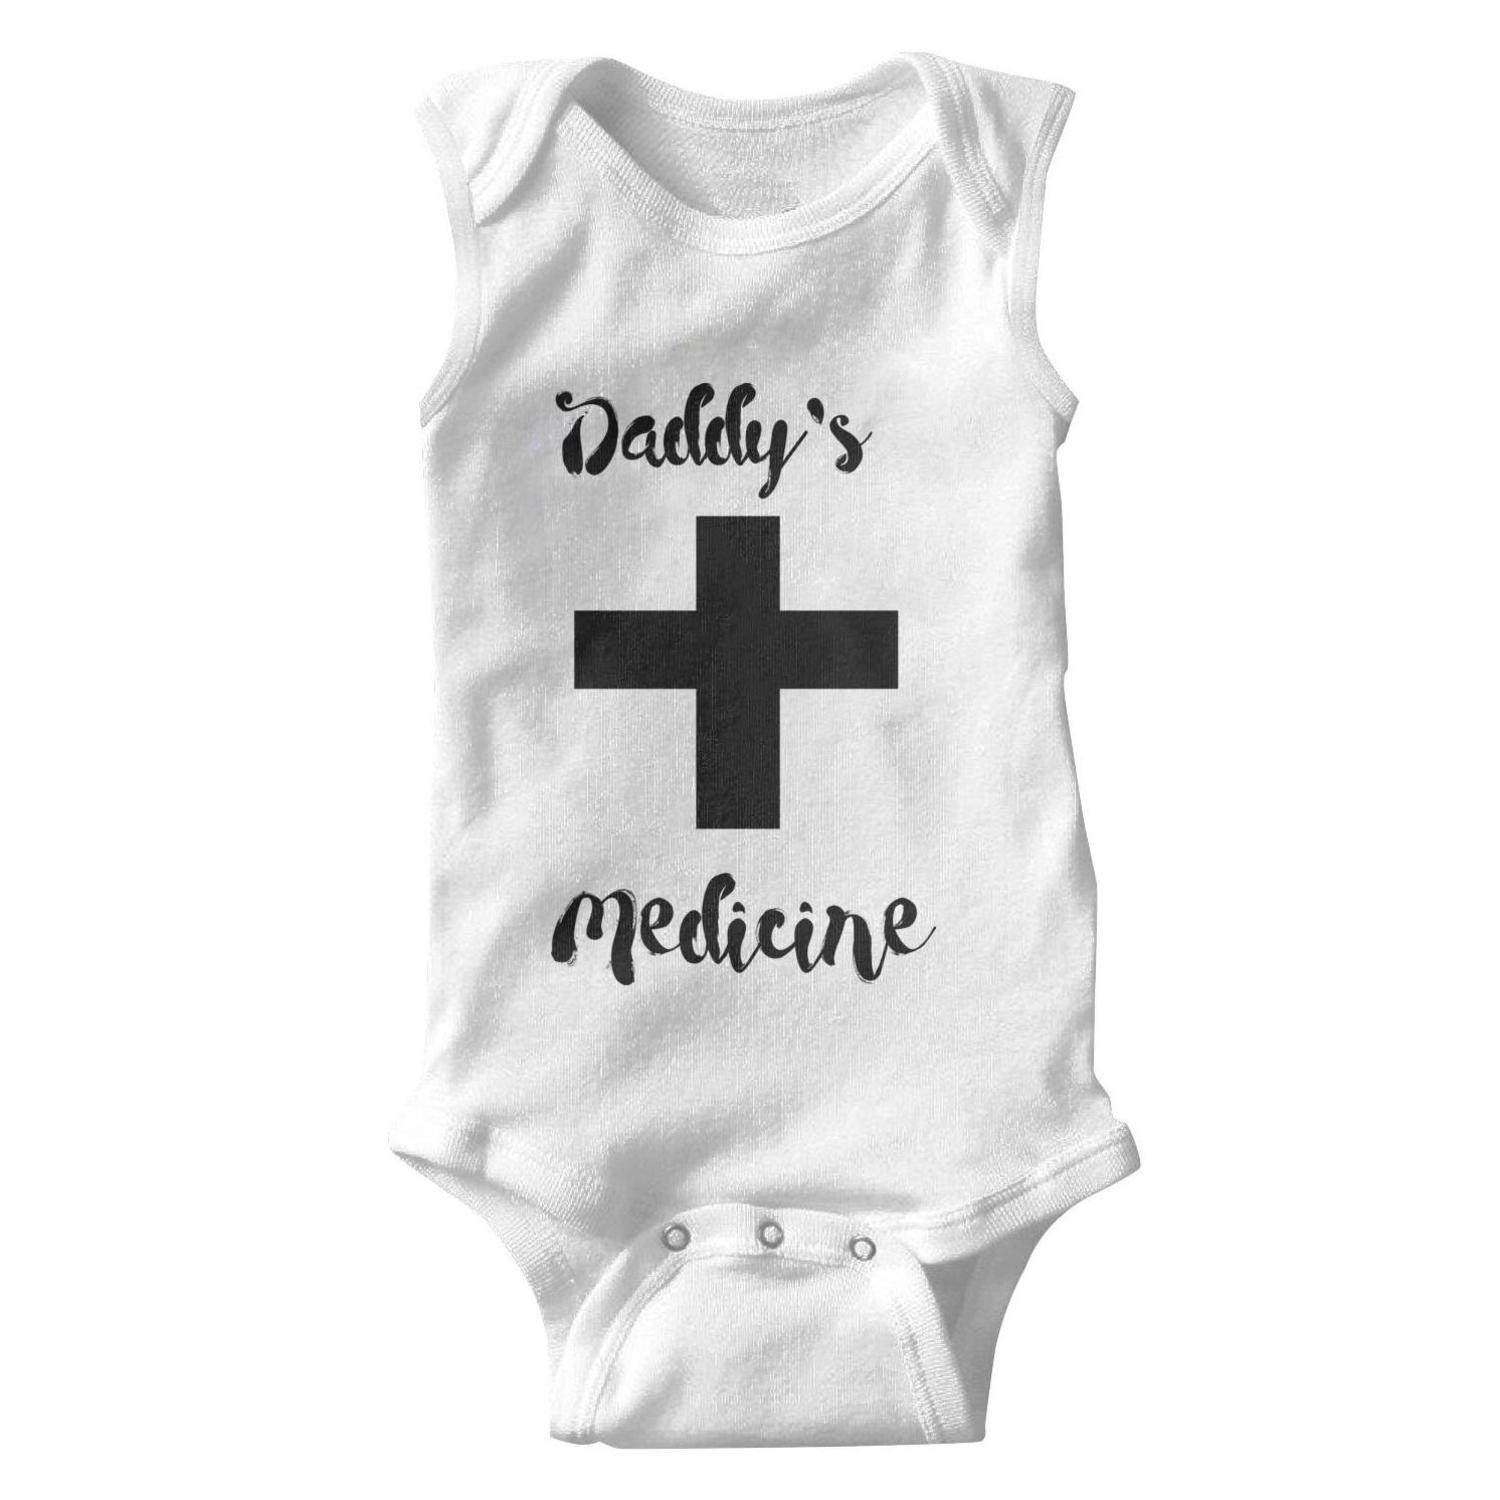 Dad Nurse Nothing Scares Me Funny Saying Baby Onesies Sleeveless Organic Cotton Romper Novelty for Kids Boys Girls